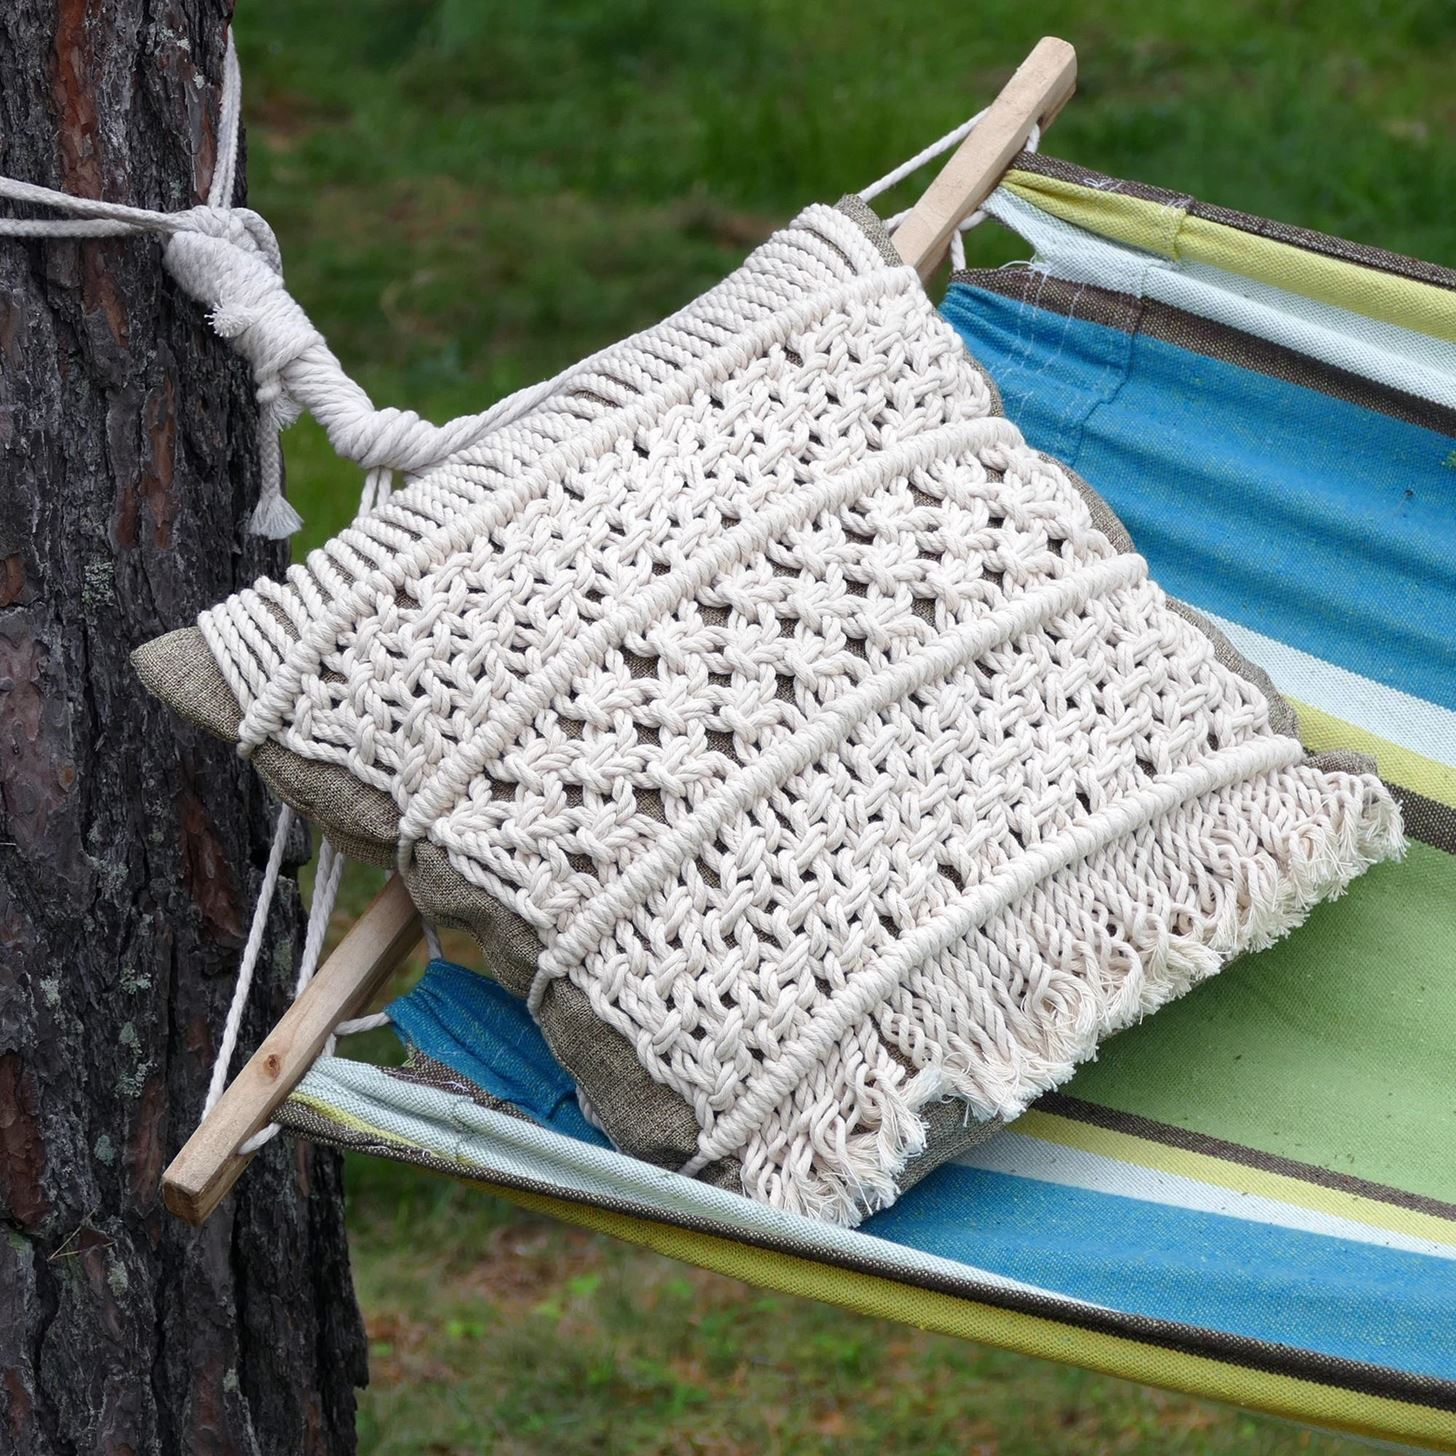 How to Make Macrame Pillow